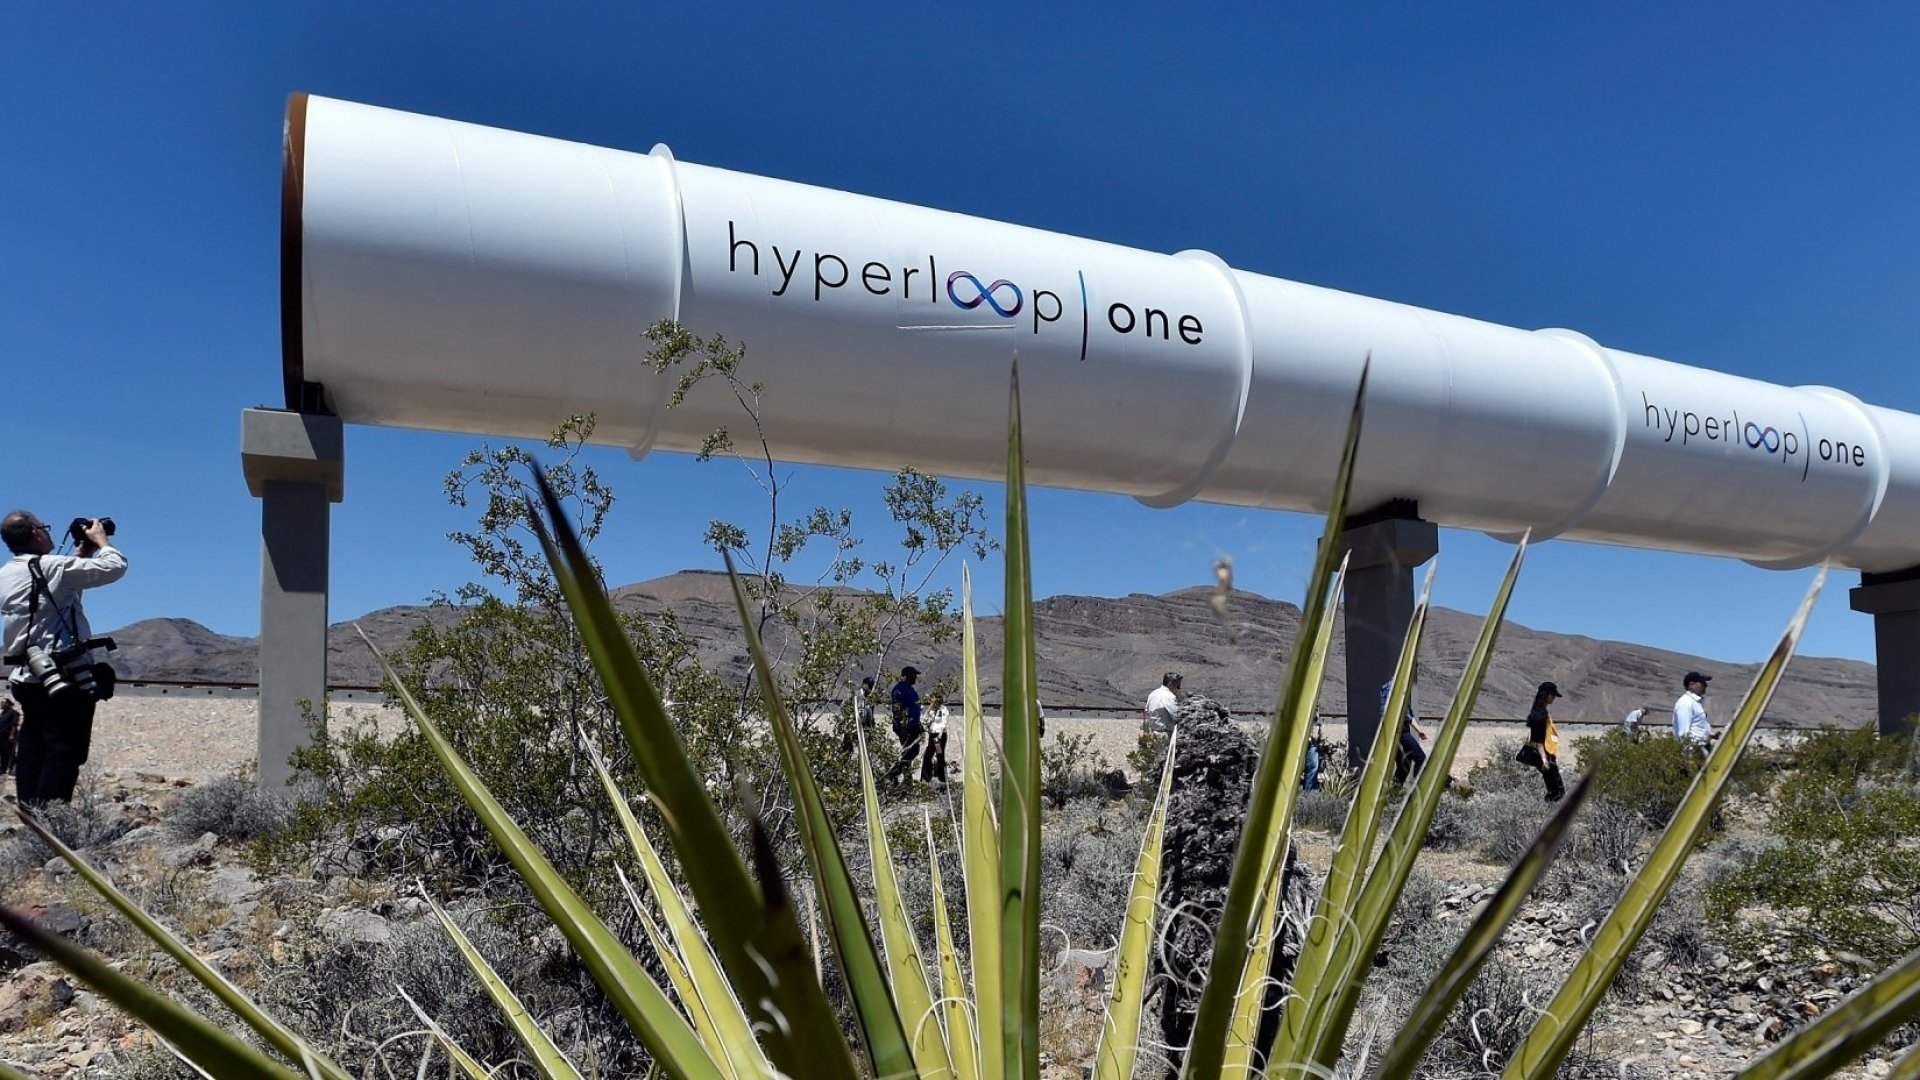 Hyperloop One Will Speed You to Your Destination at 700 MPH. Here's What That Will Feel Like